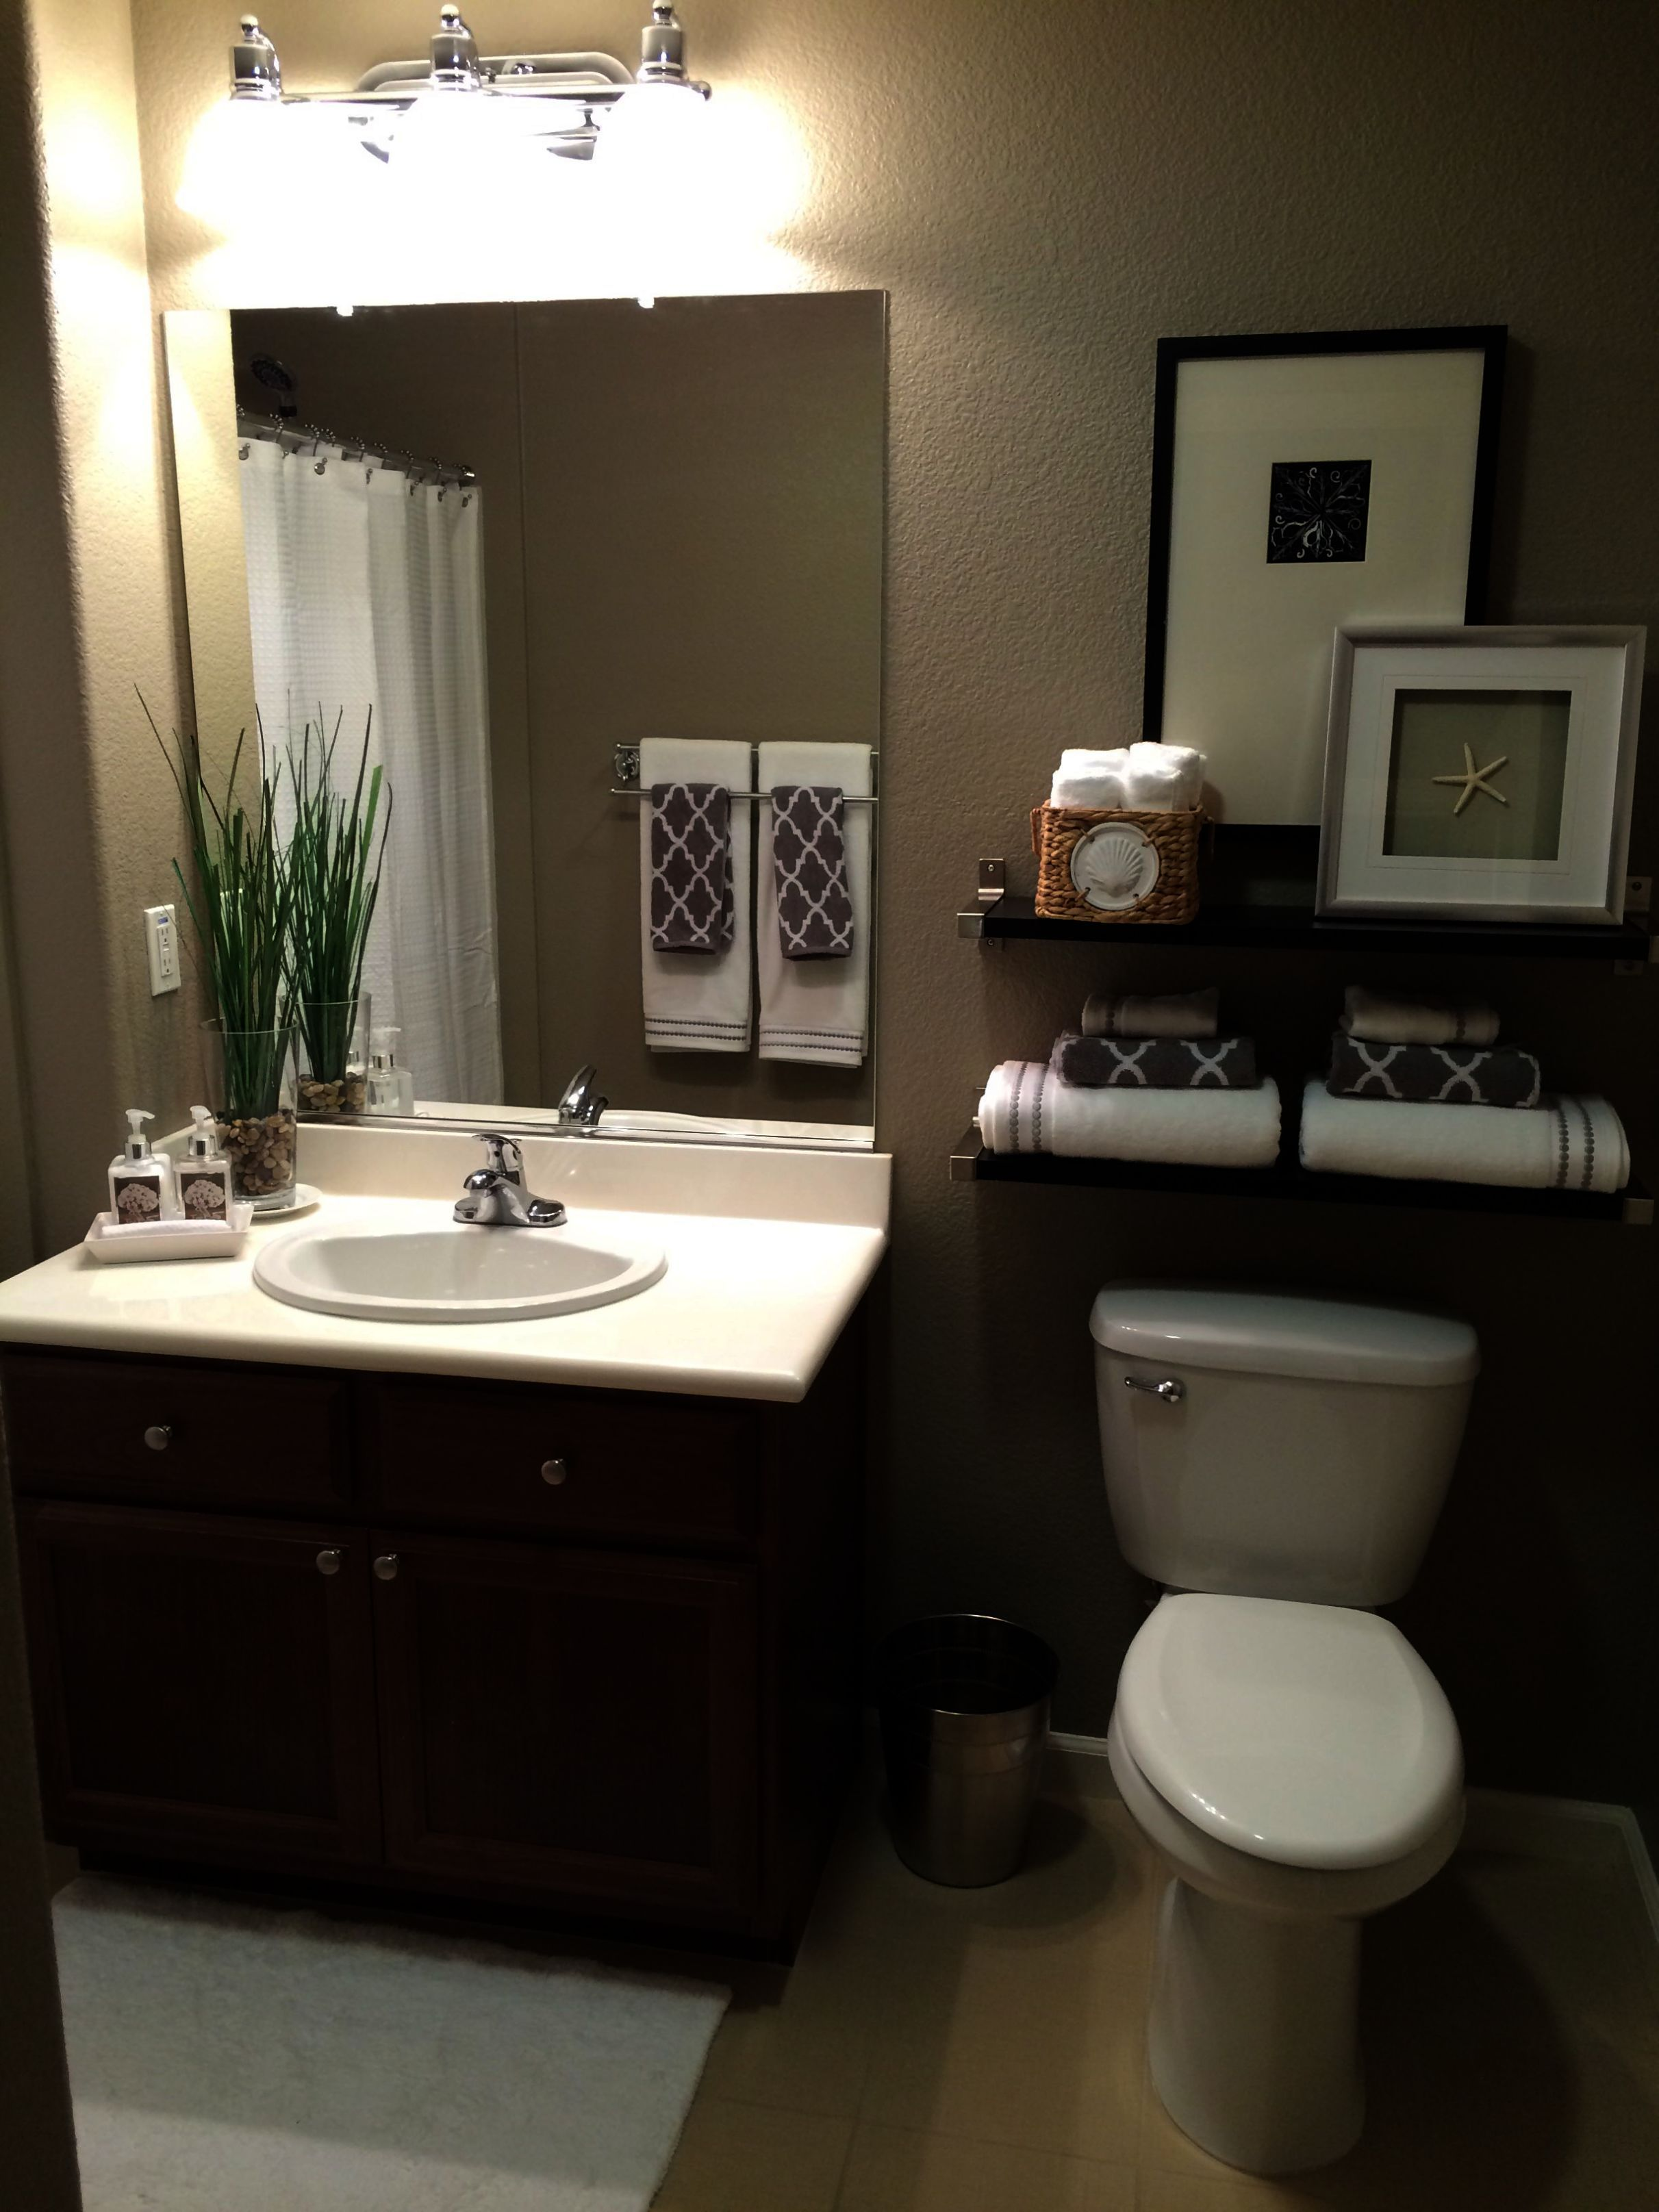 Bathroom decor for small spaces ideas philippines also great rh pinterest